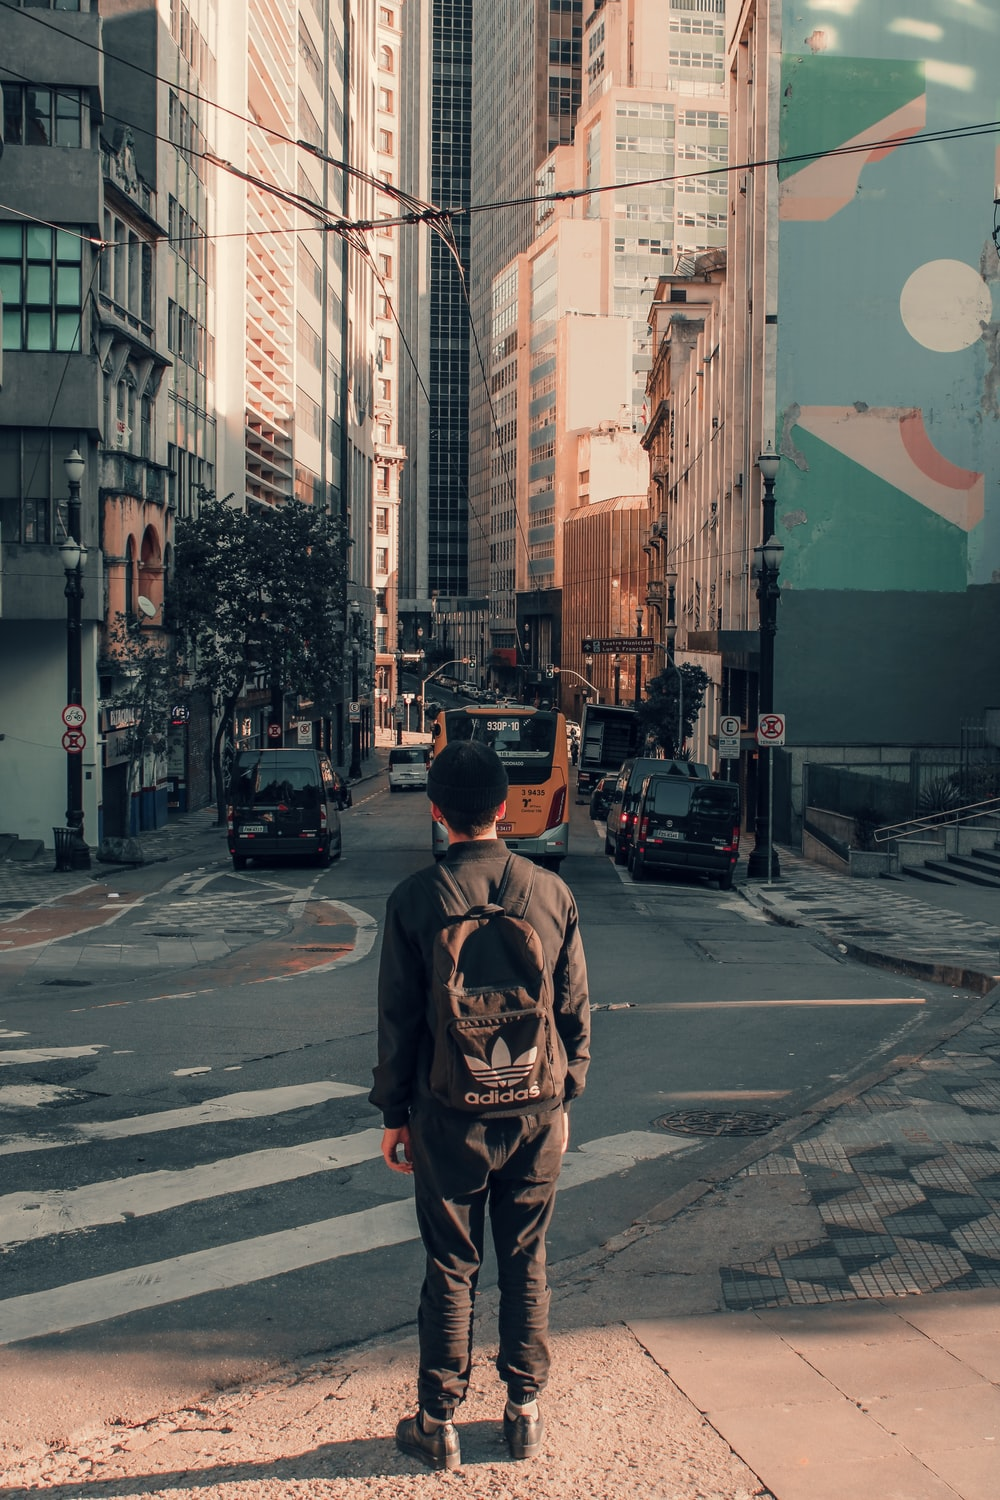 man carrying backpack standing on street